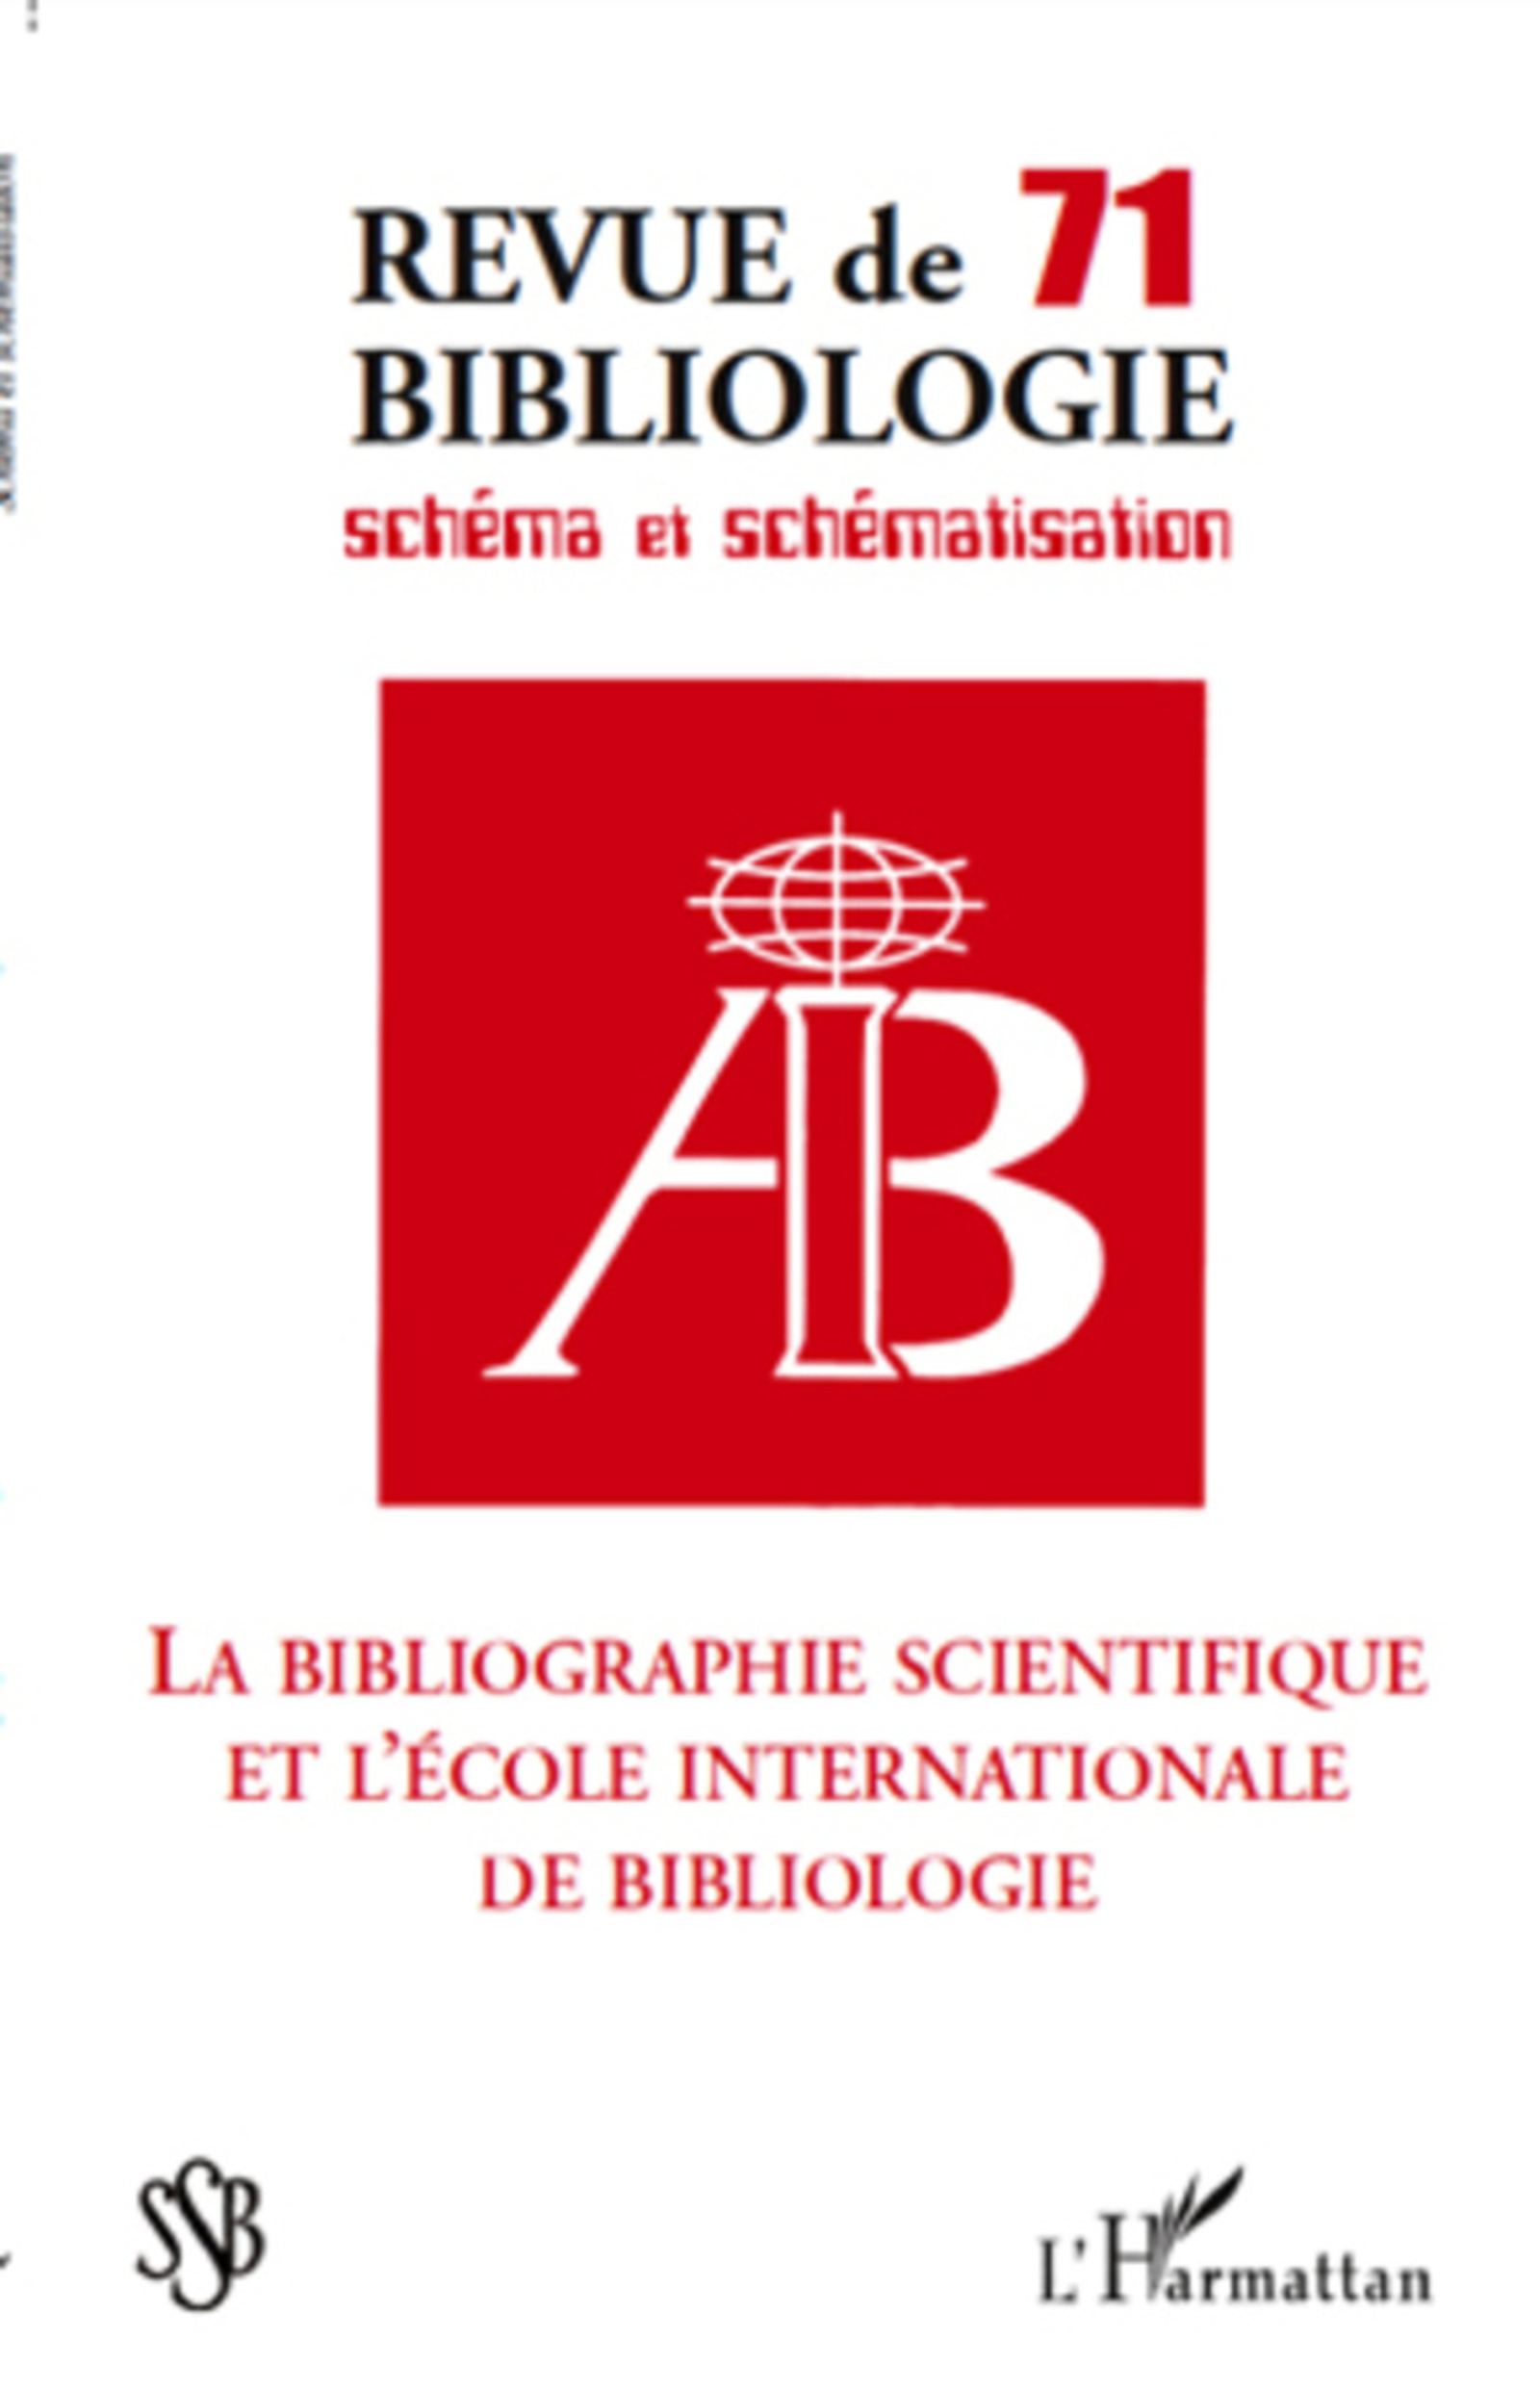 La bibliographie scientifique et l'école internationale de bibliologie